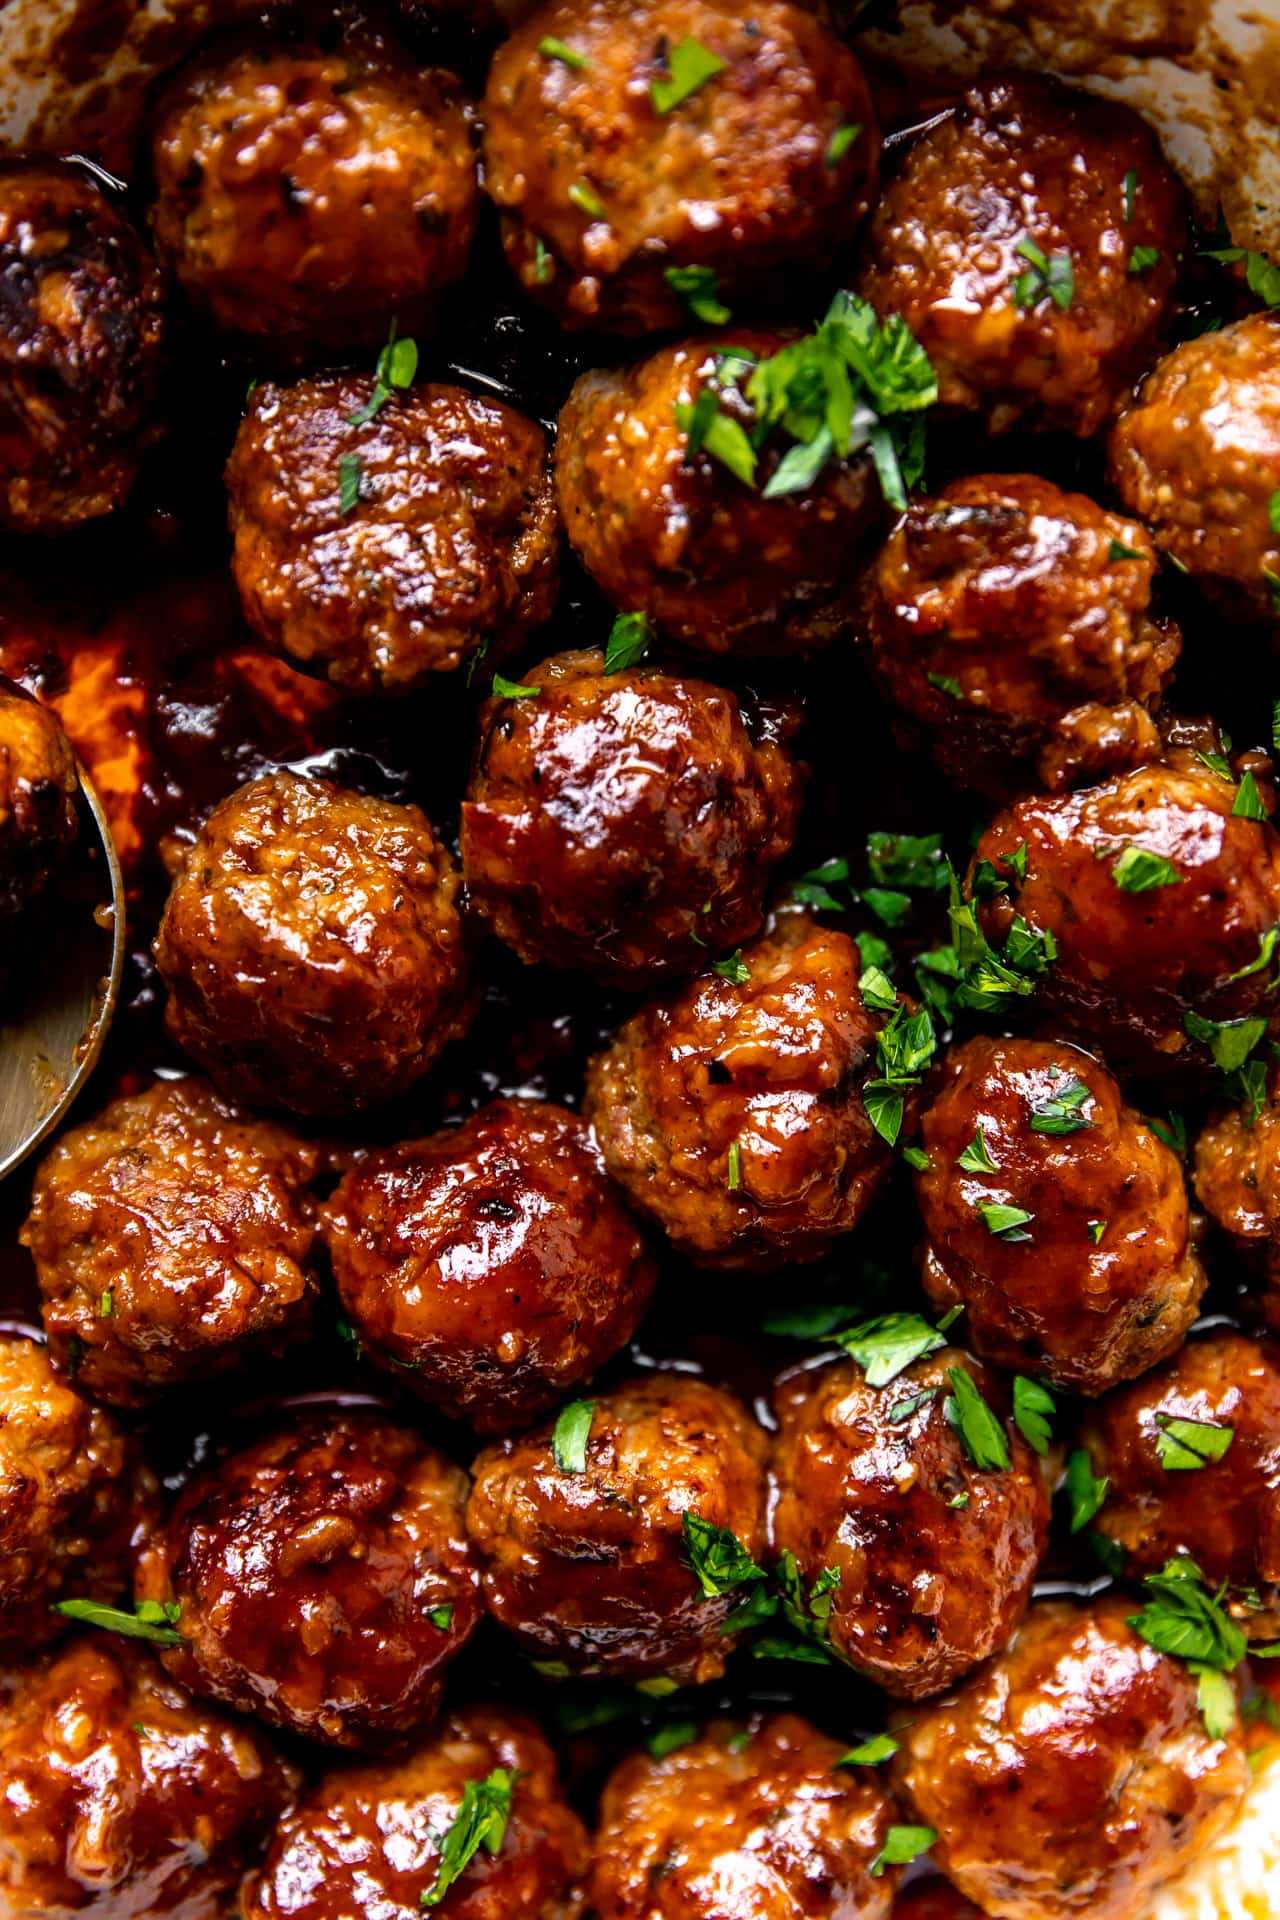 Up close view of a skillet filled with cooked bacon meatballs in a rich bourbon bbq sauce.